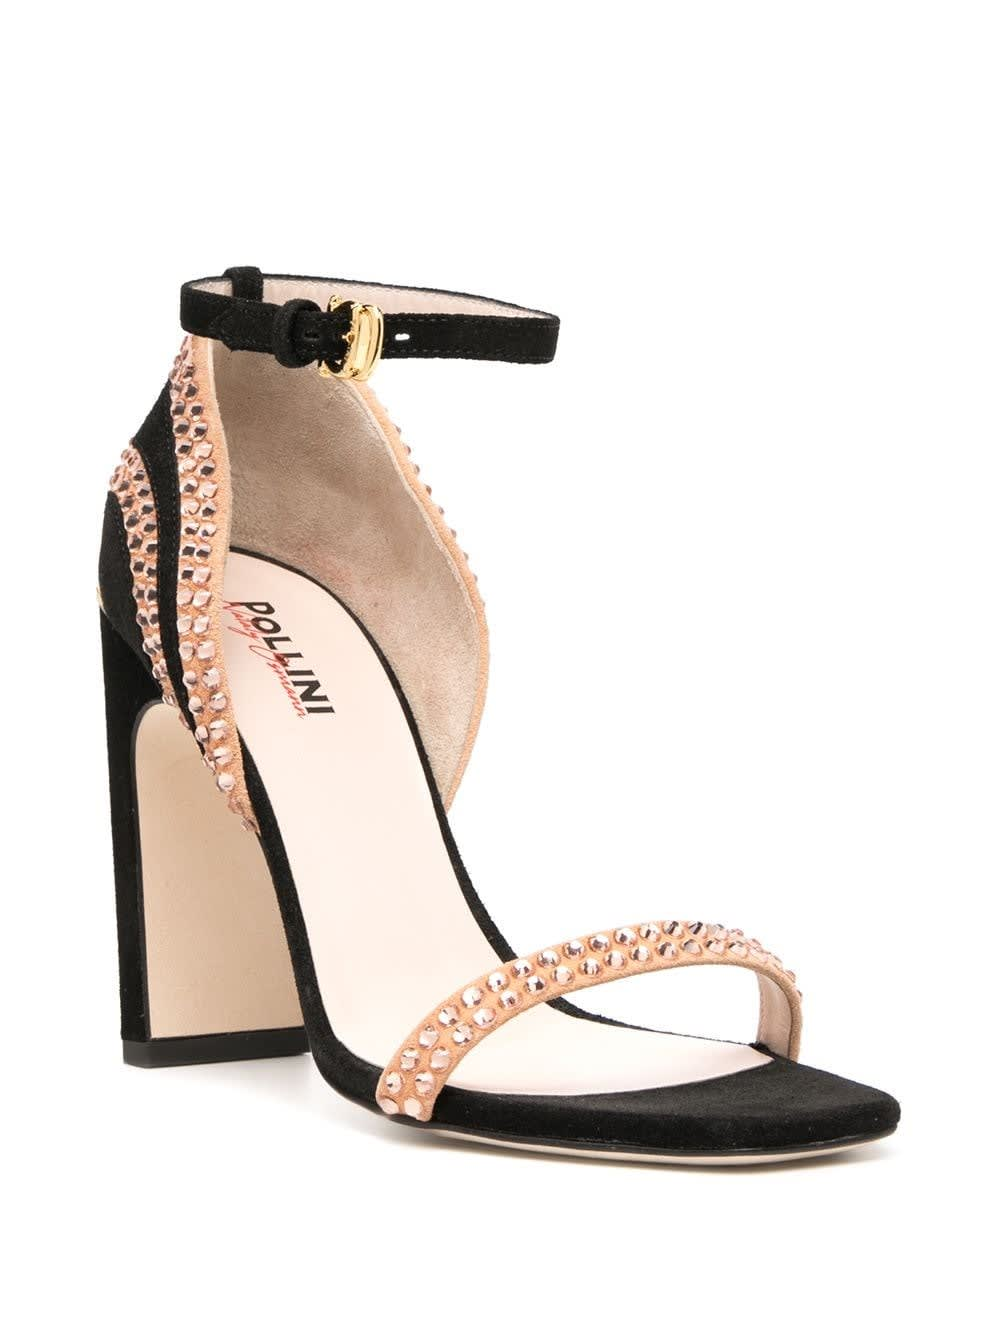 Pollini SANDALS WITH STRASS DETAIL